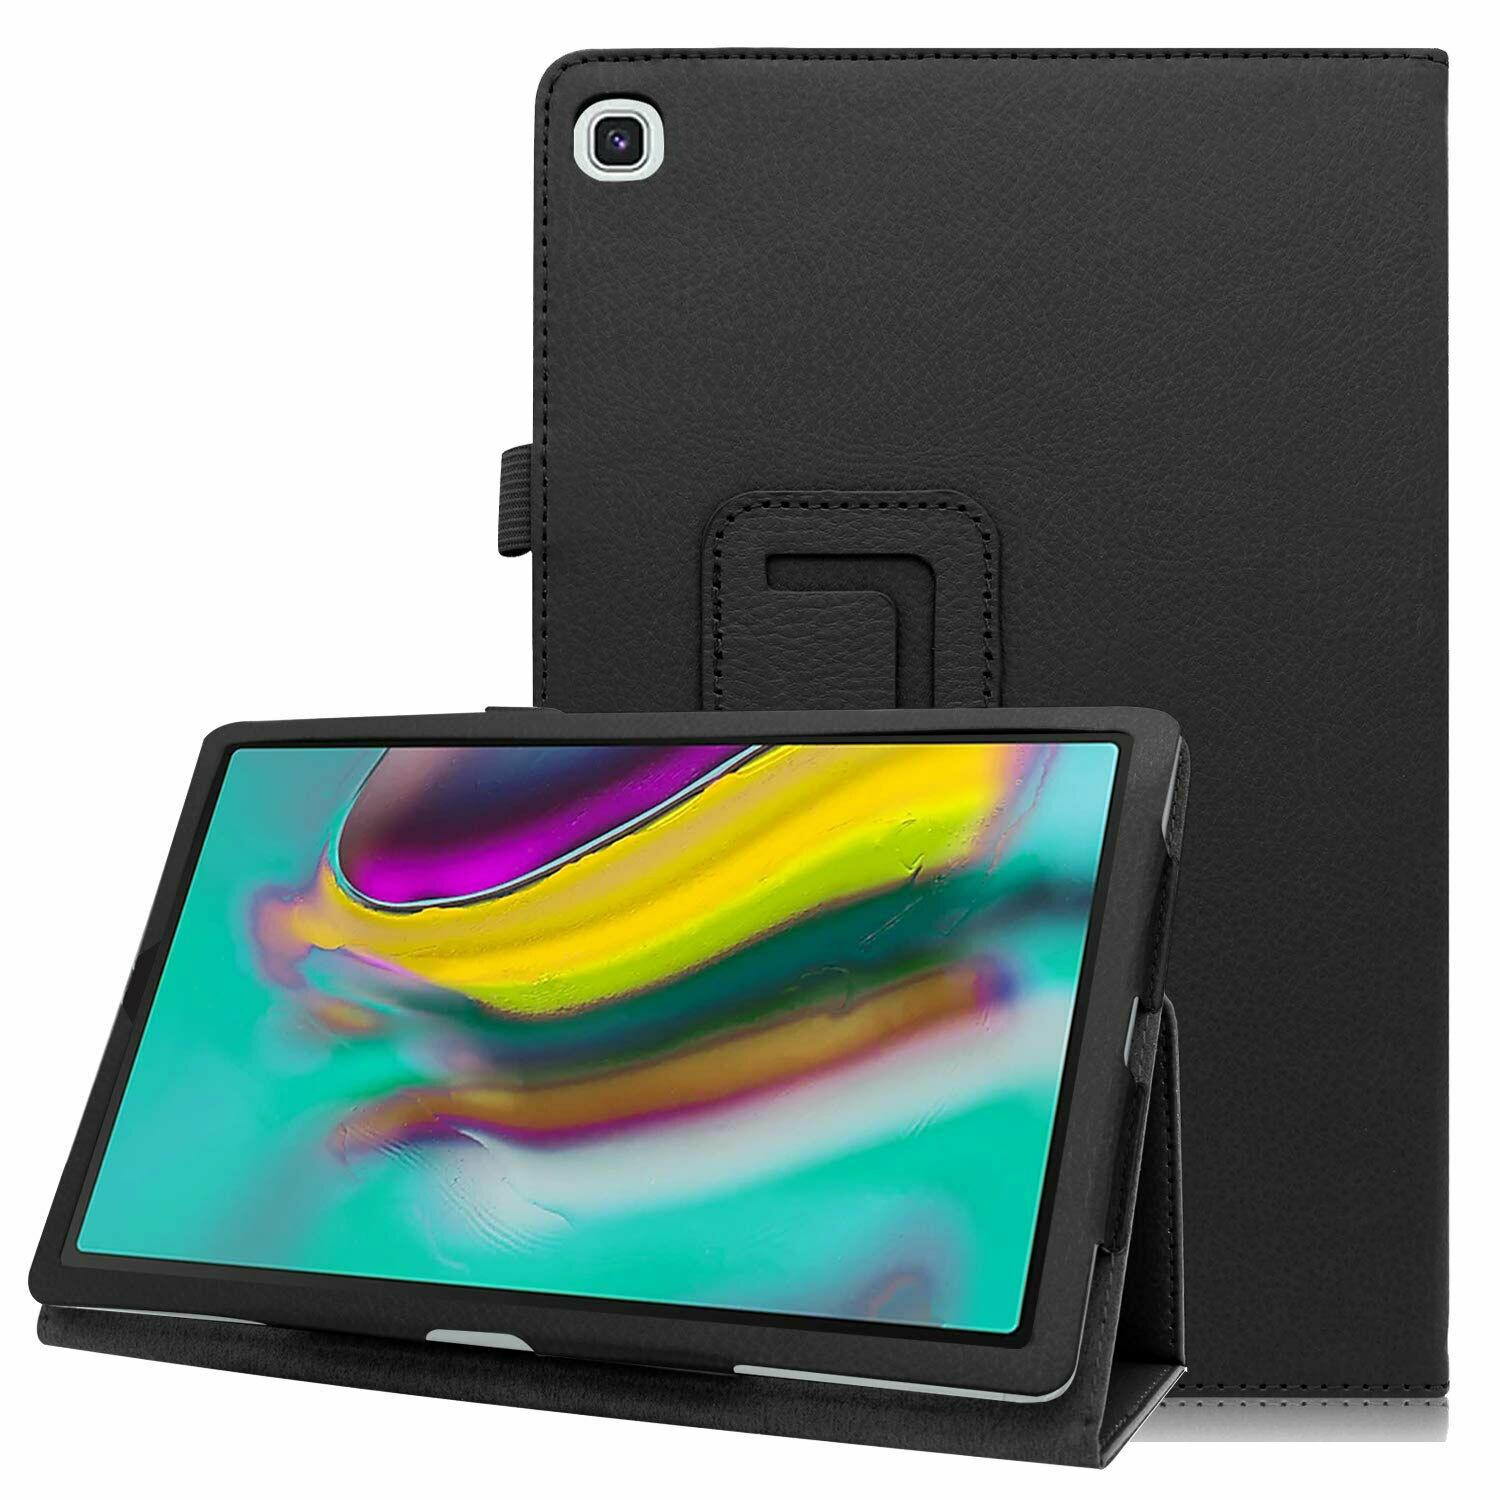 Case for <font><b>Samsung</b></font> Galaxy <font><b>Tab</b></font> <font><b>A</b></font> 2019 SM-T510 SM-T515 T510 T515 Tablet <font><b>cover</b></font> Stand Case for <font><b>Tab</b></font> <font><b>A</b></font> <font><b>10.1</b></font>'' 2019 Tablet Funda Case image